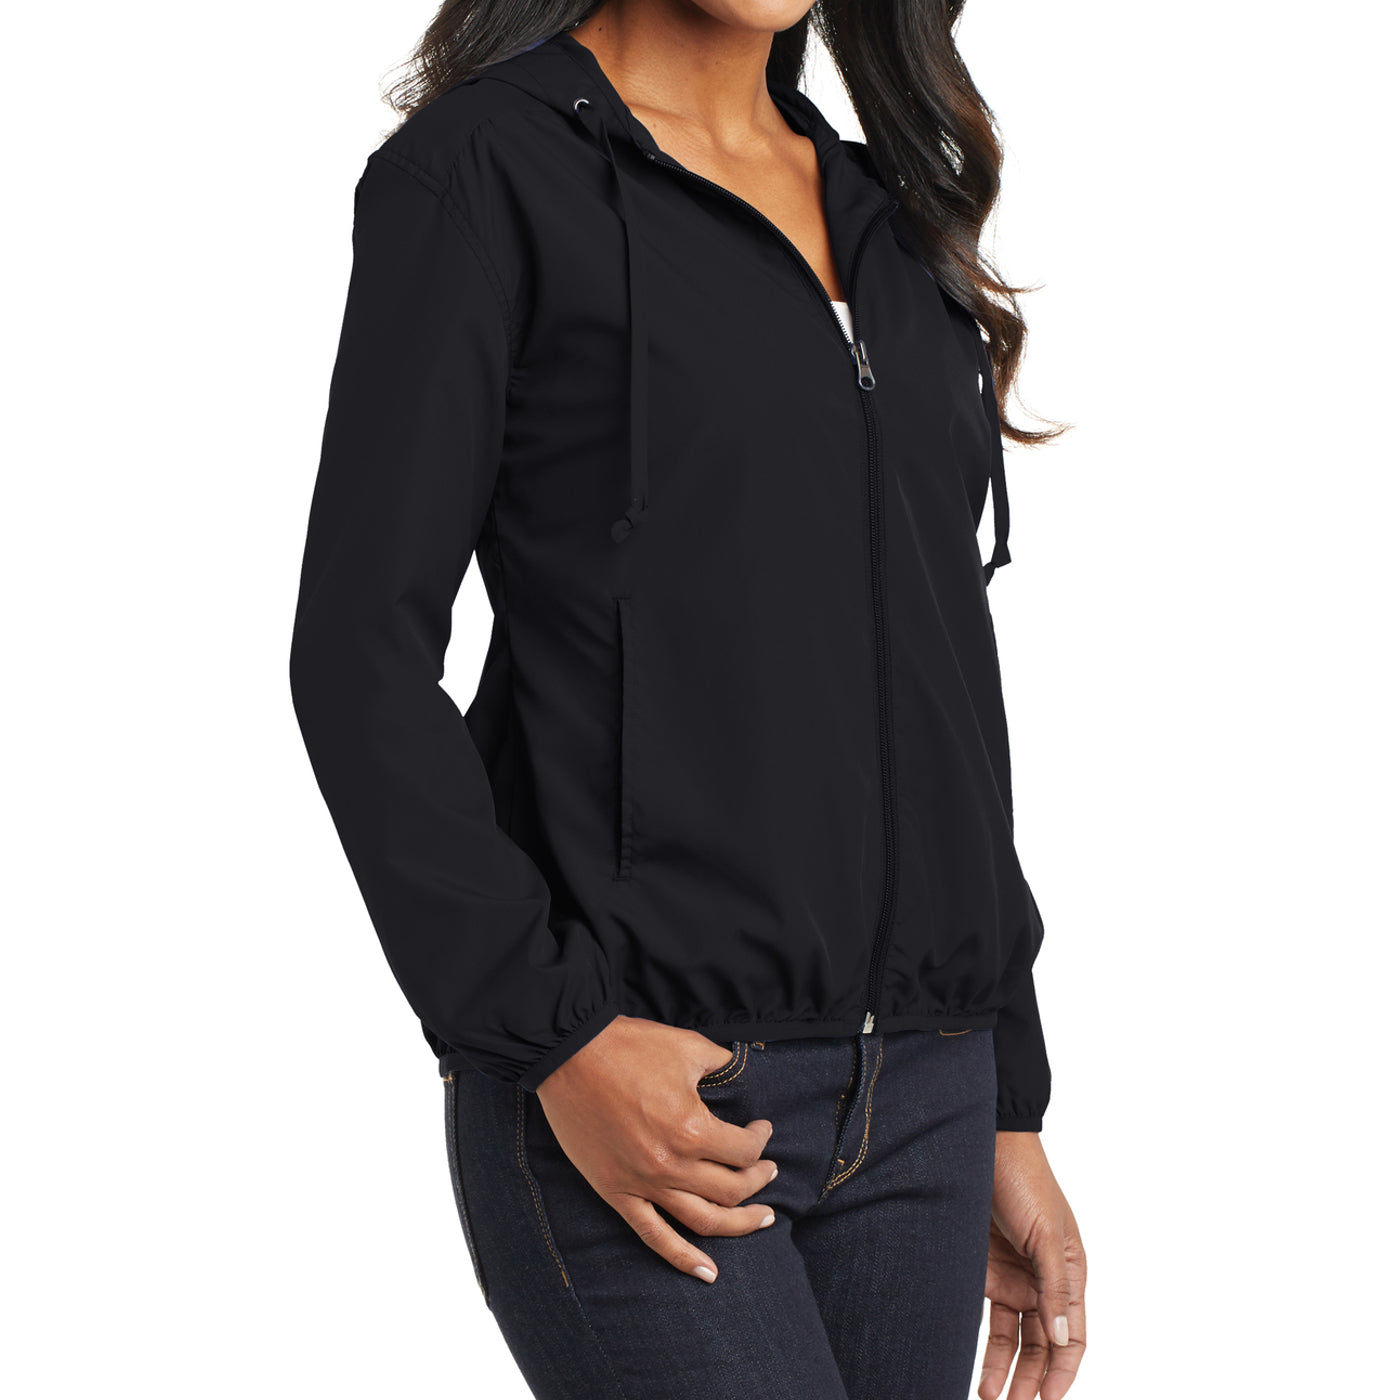 Women's Hooded Essential Jacket - Black - Side